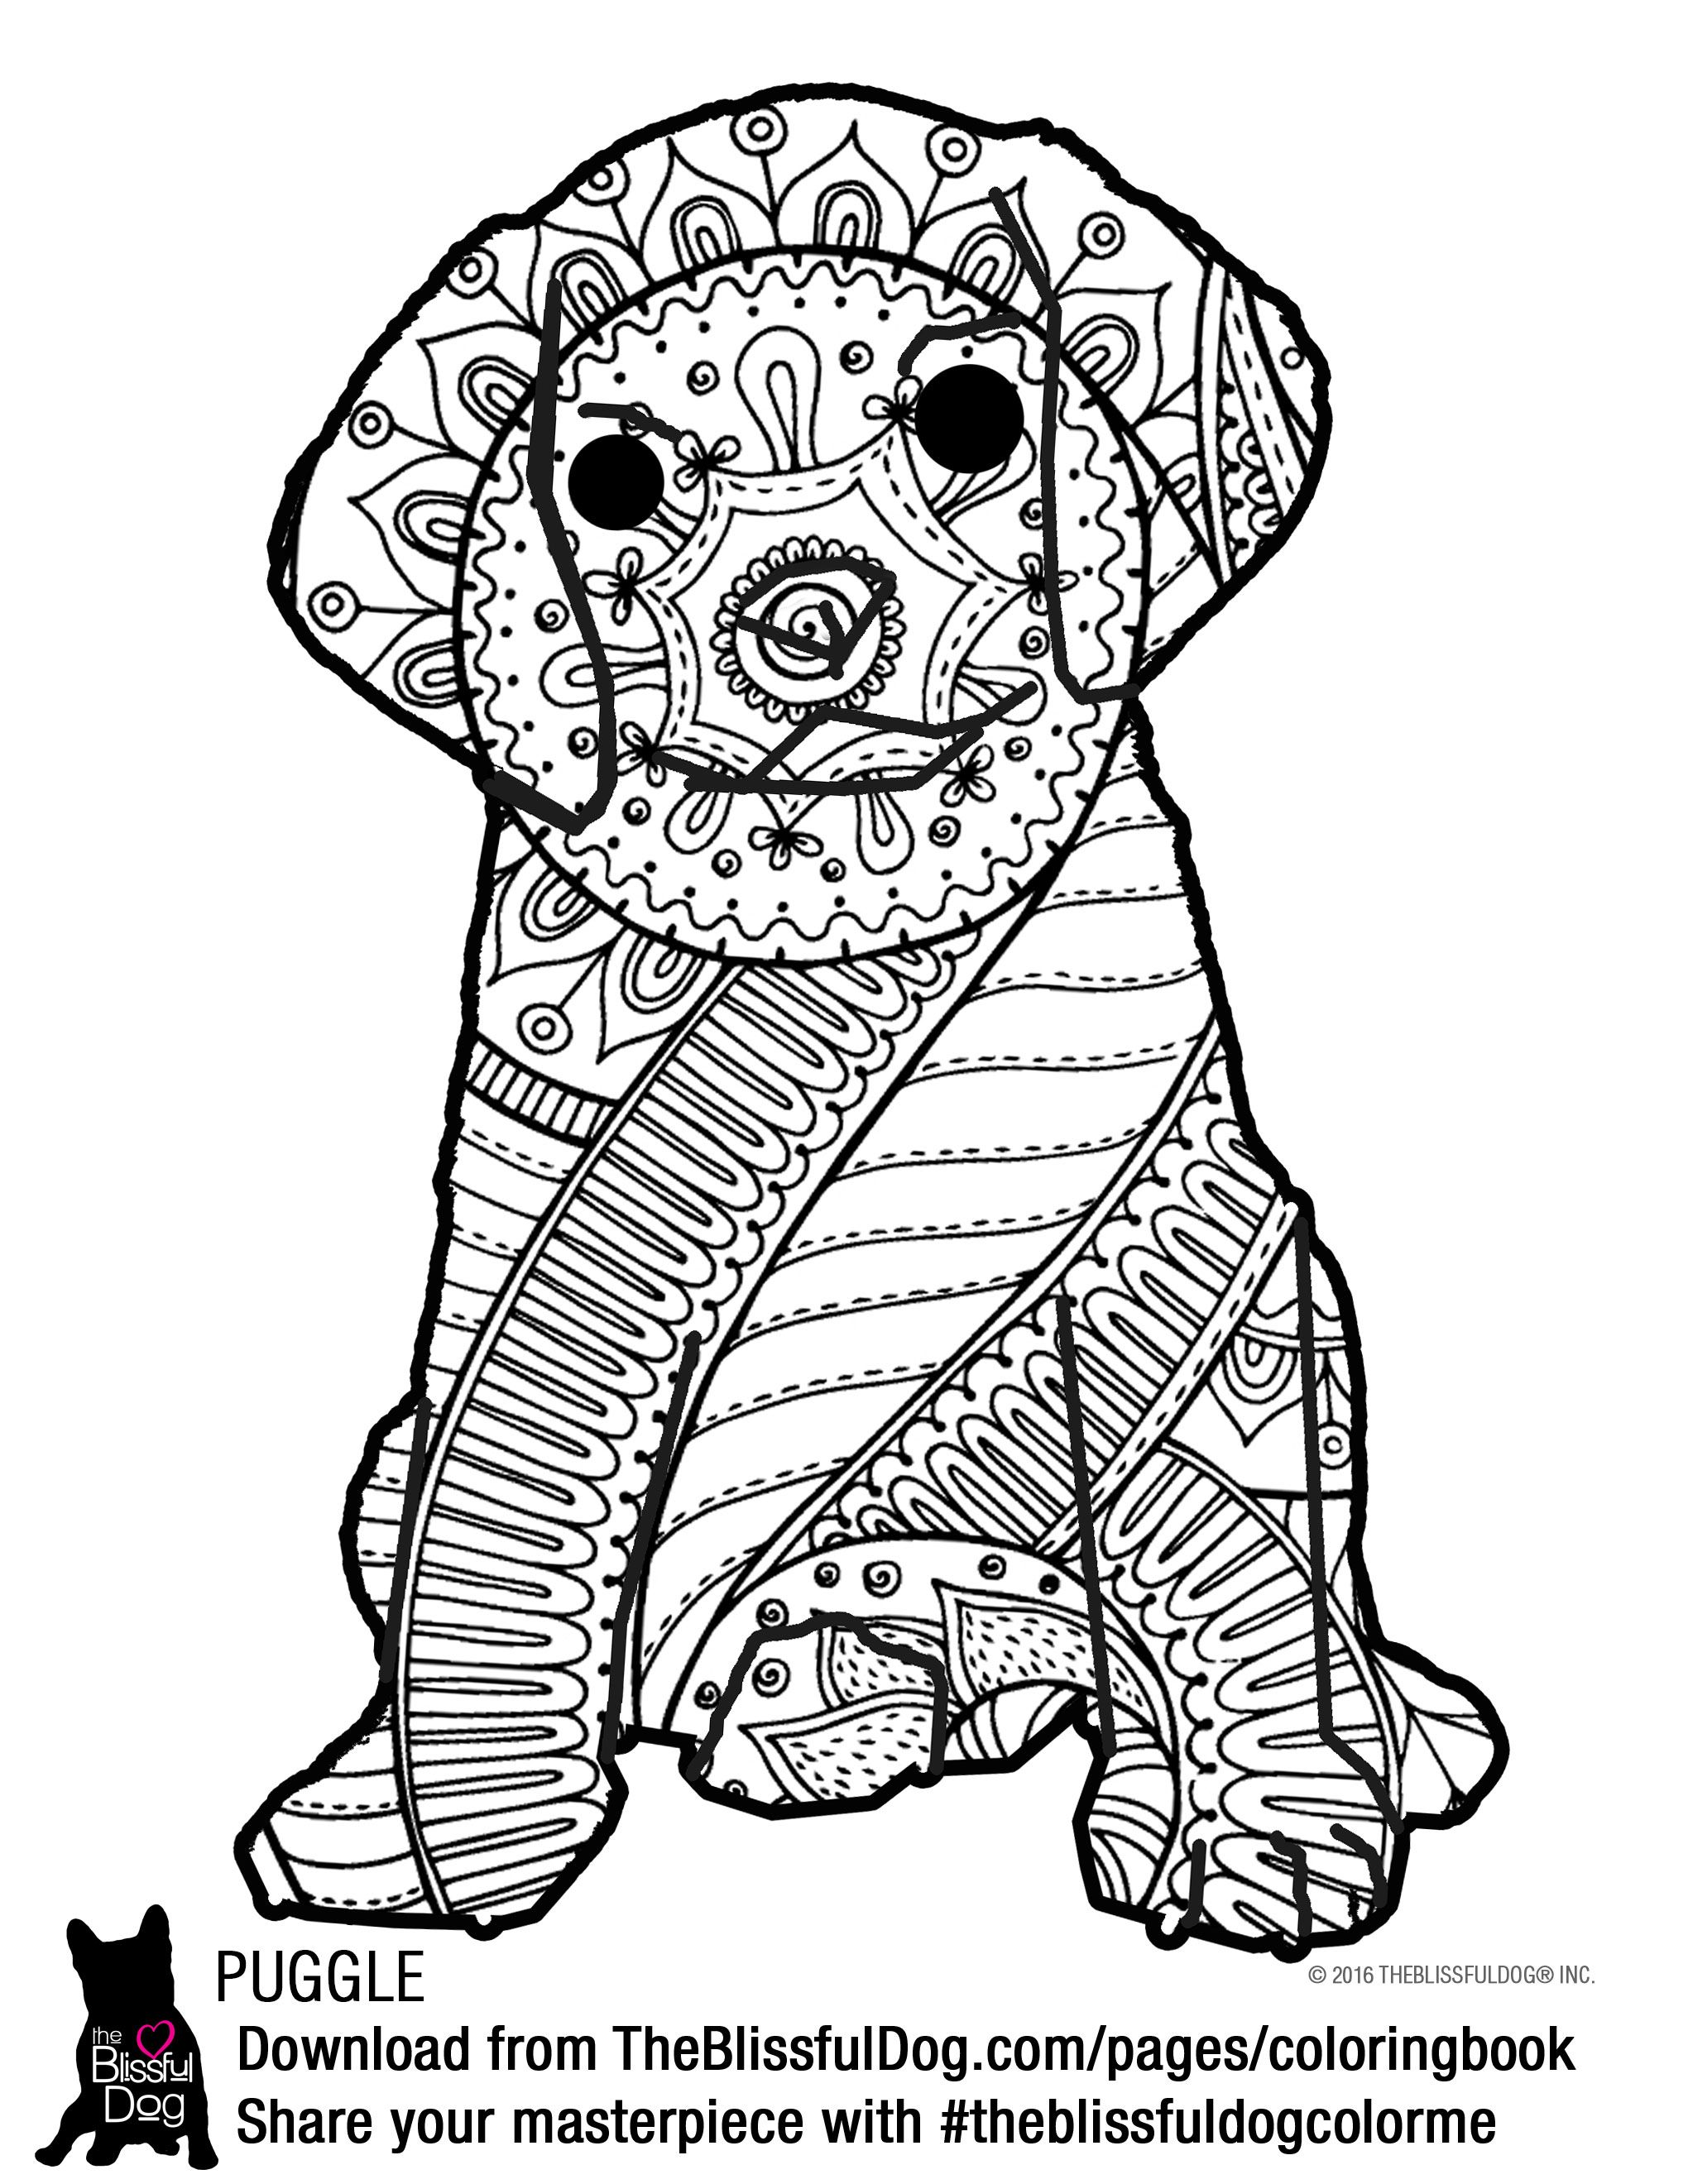 Coloring Book | Coloring books and Adult coloring